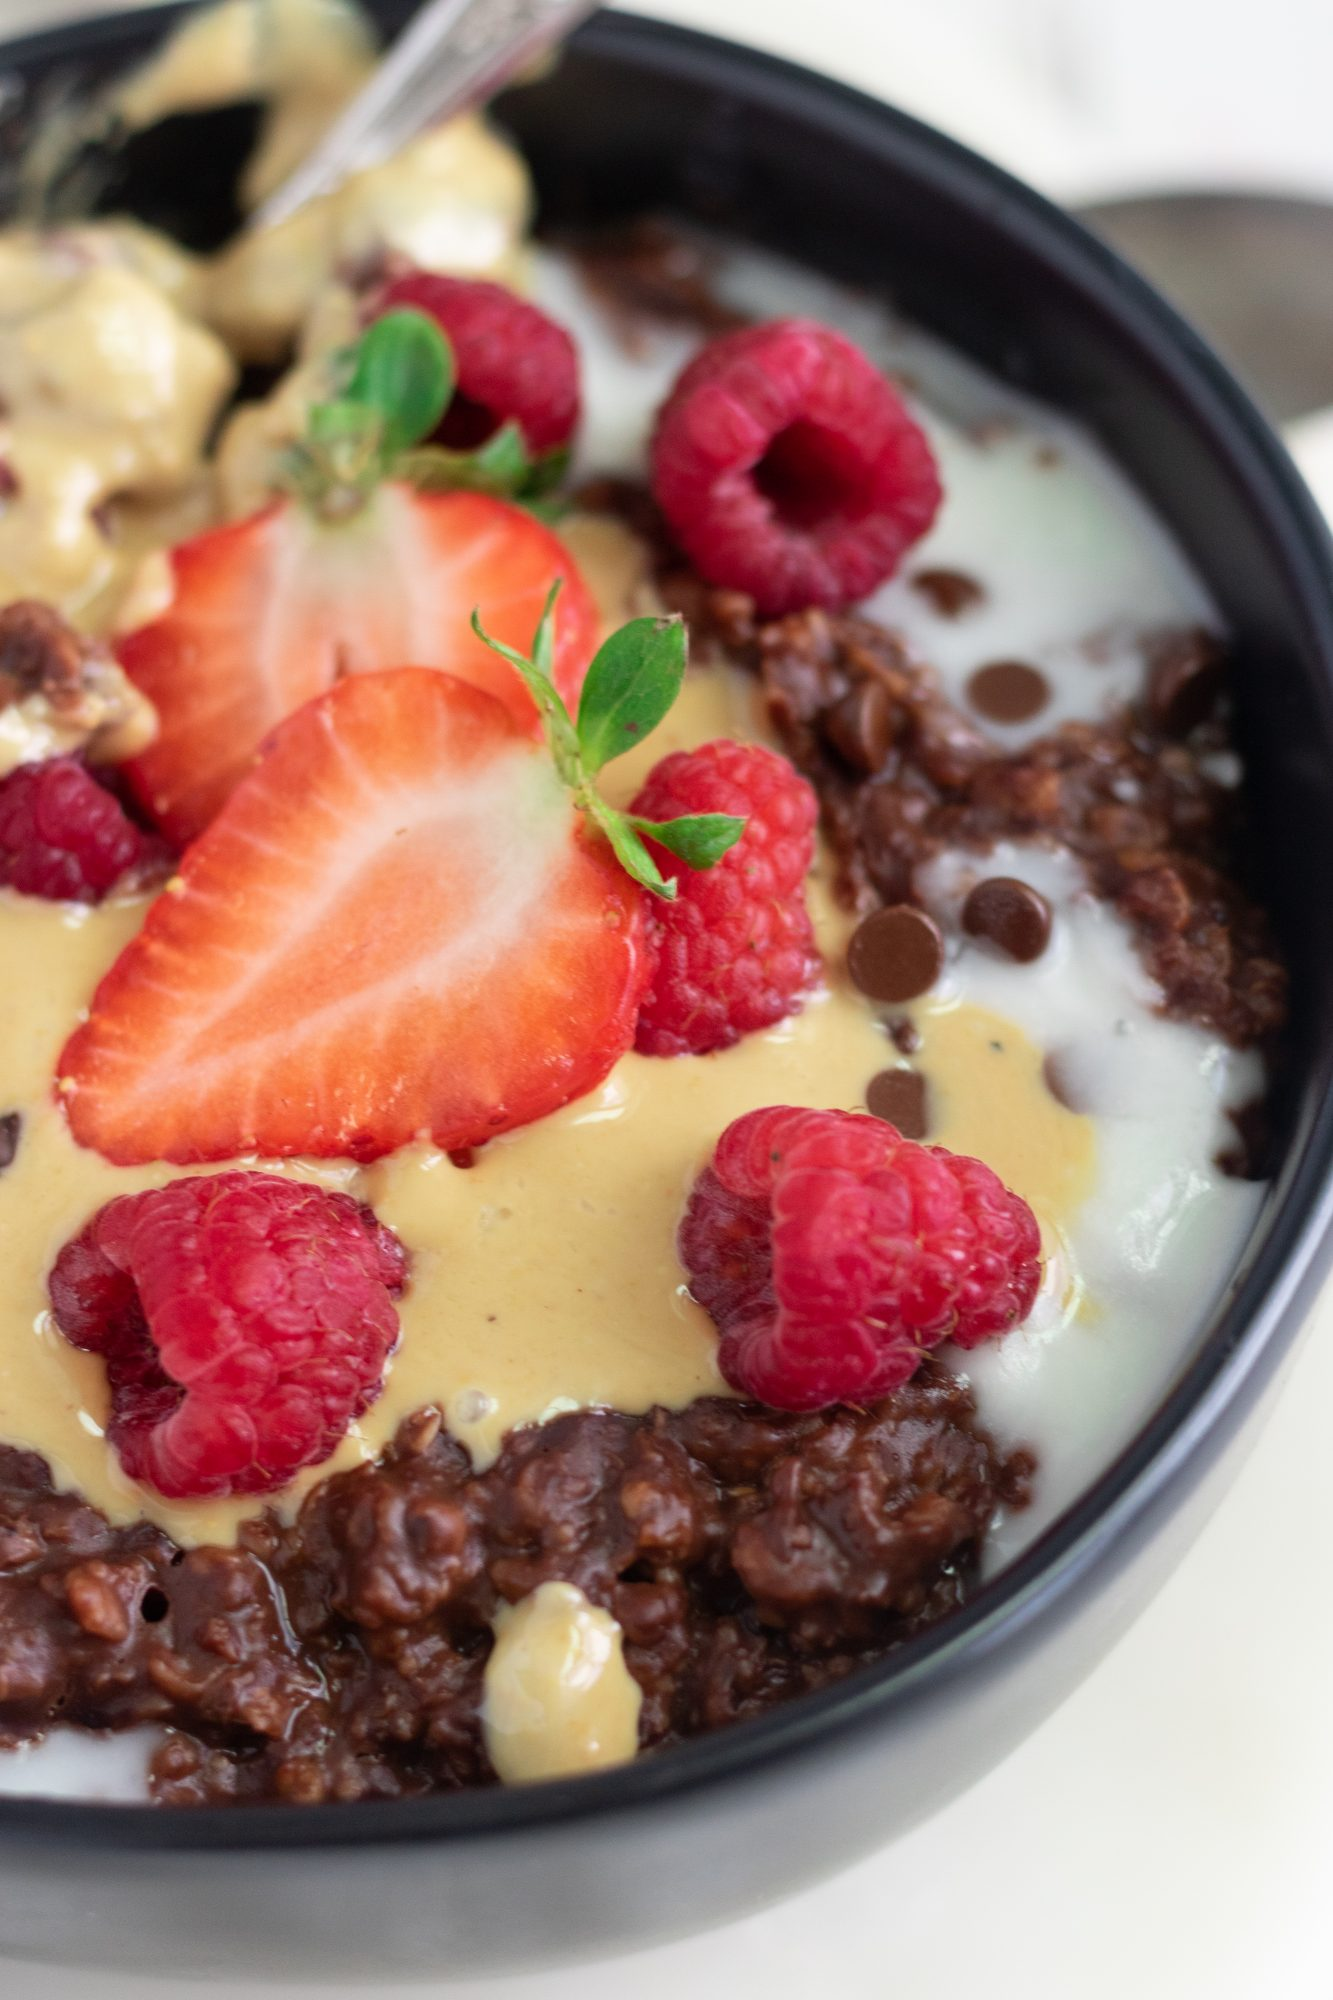 Vegan Chocolate Oatmeal